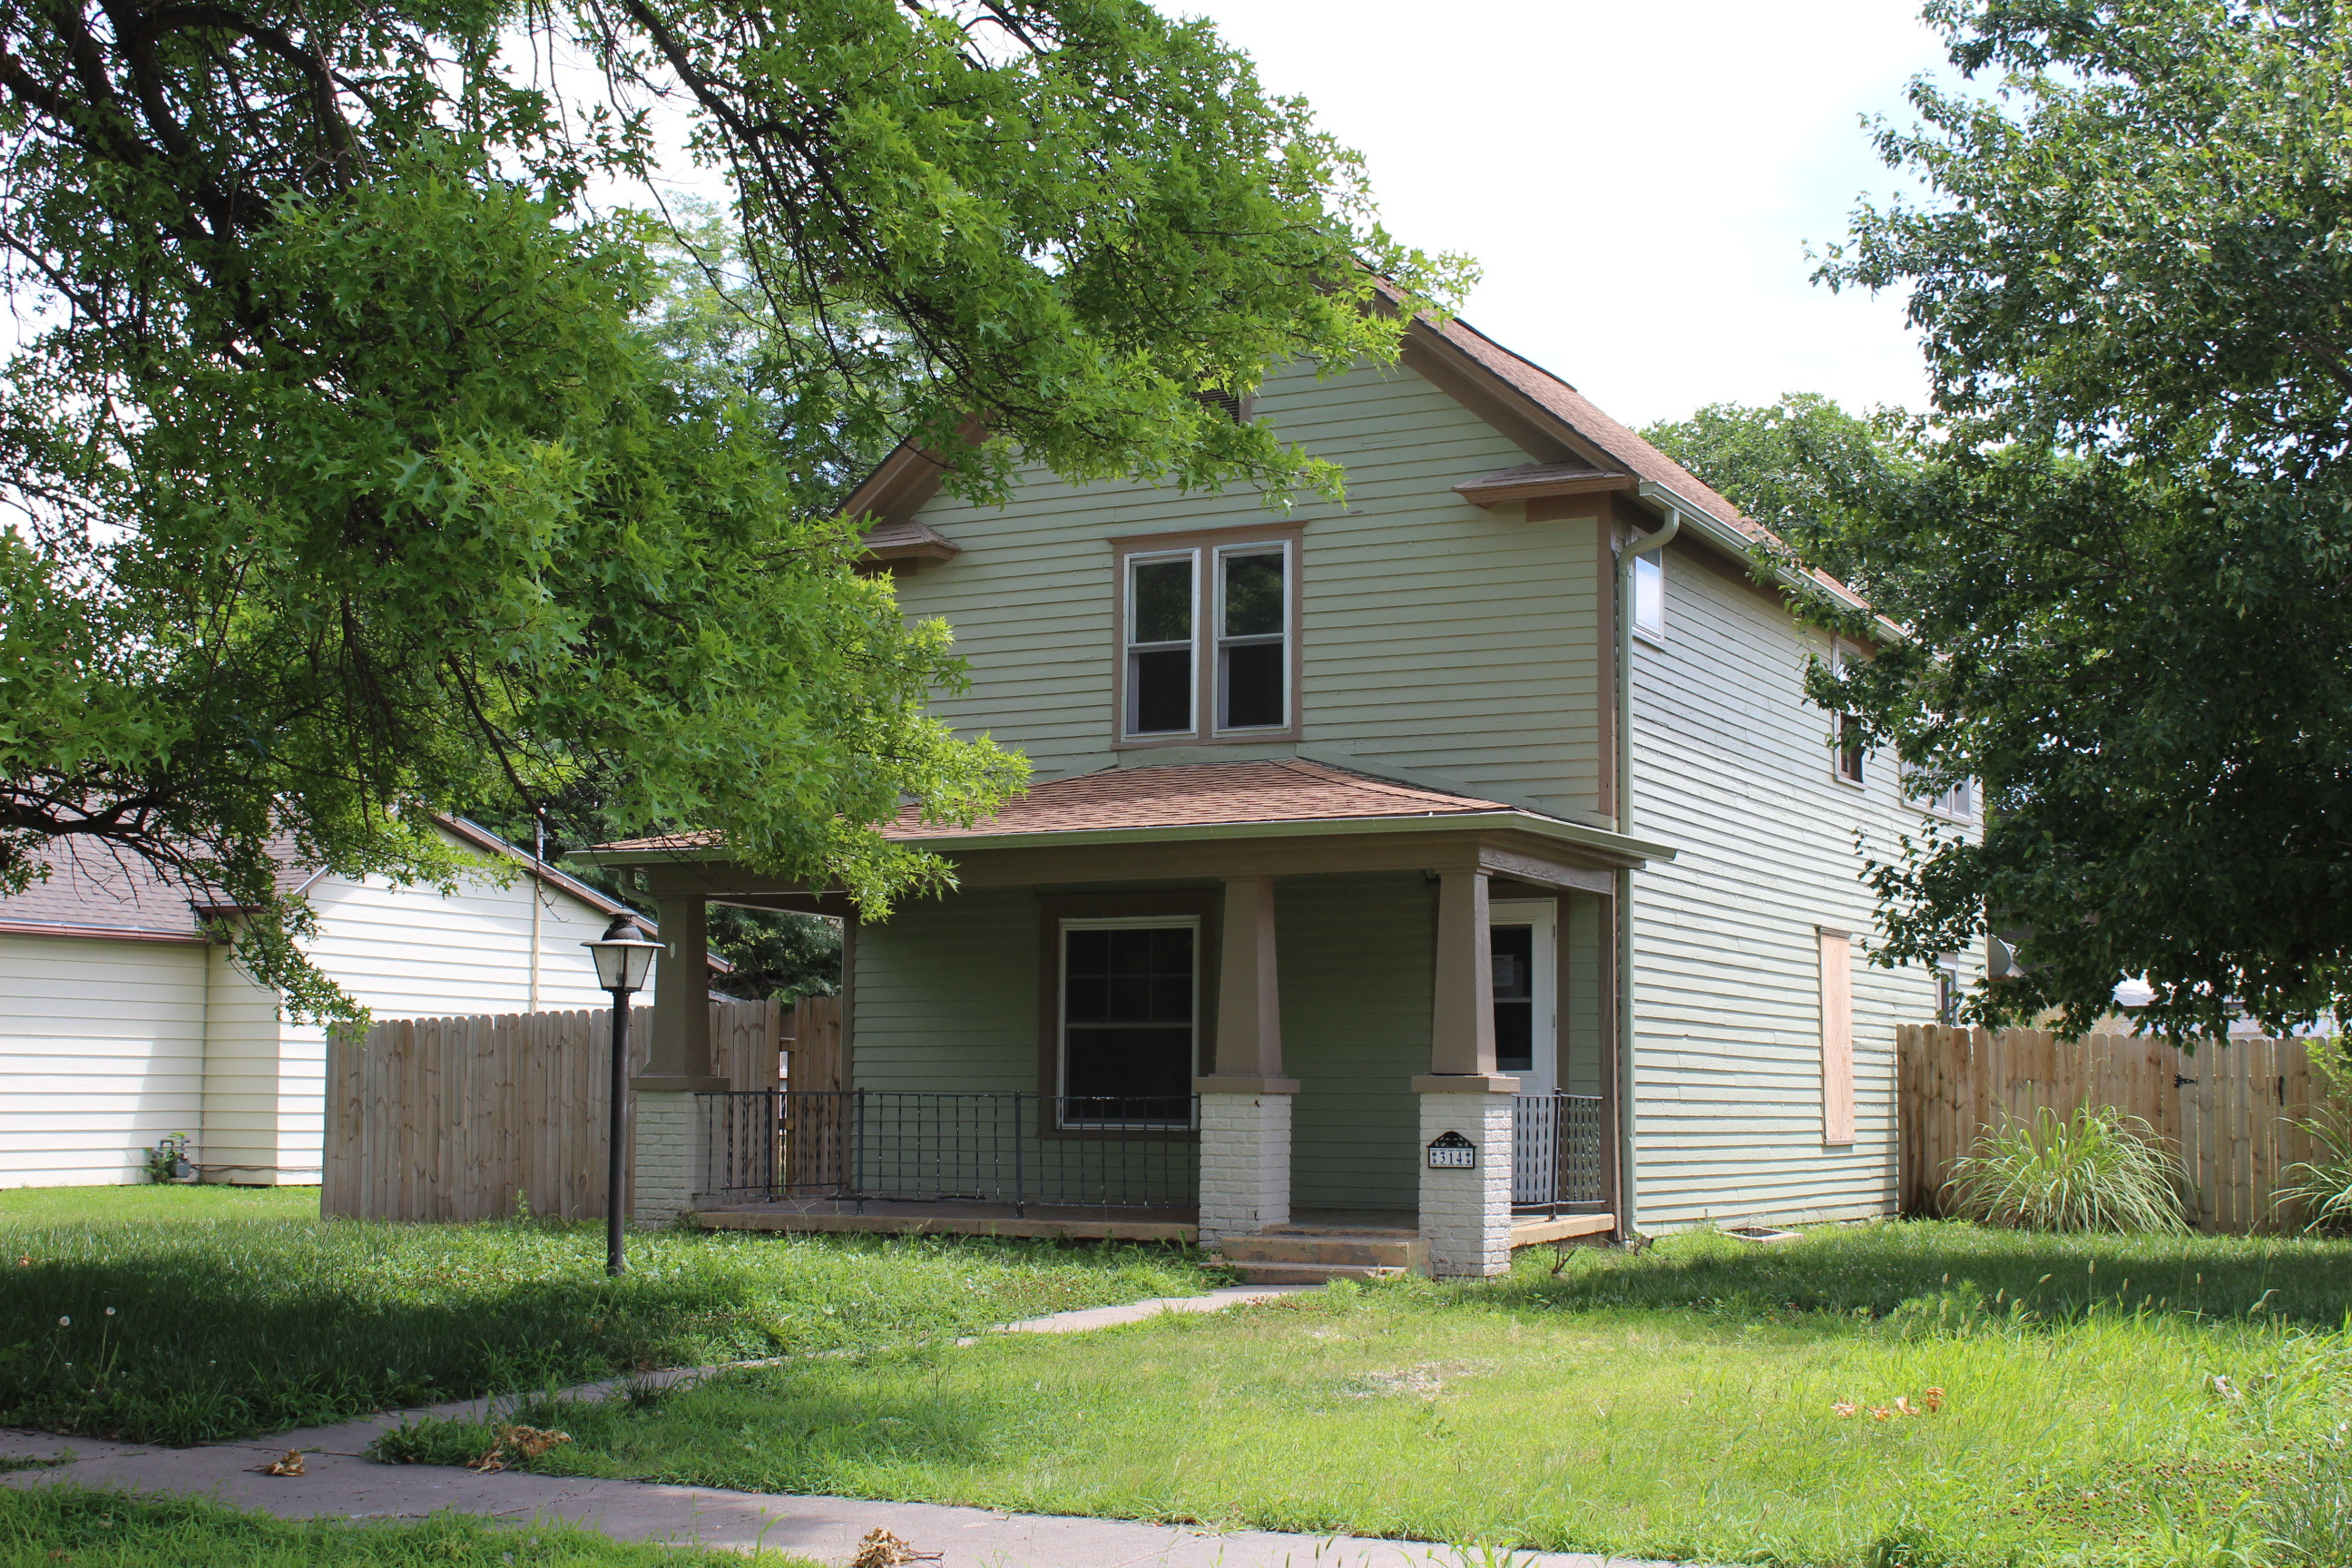 314 Campbell, Clyde, Kansas 66938